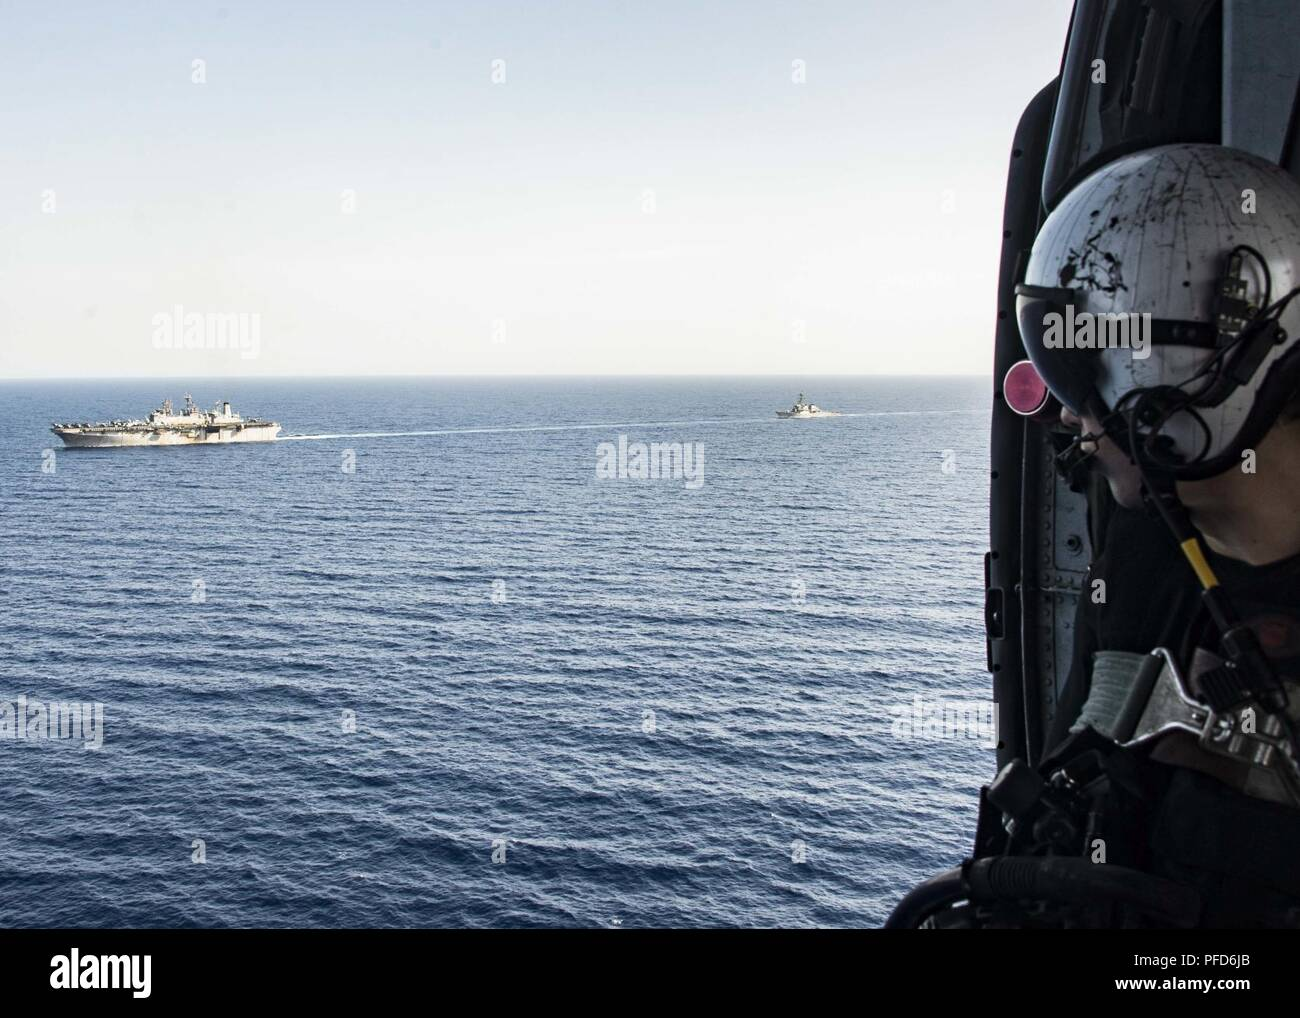 5TH FLEET AREA OF OPERATIONS (June 8, 2018) Naval Air Crewman (Helicopter) 2nd Class Luke Elliott, assigned to Helicopter Sea Combat Squadron (HSC) 28, observes a replenishment-at-sea between the Wasp-class amphibious assault ship USS Iwo Jima (LHD 7) and the fleet replenishment oiler USNS Big Horn (T-AO 198) from an MH-60S Sea Hawk, June 8, 2018. Iwo Jima, homeported in Mayport, Fla., is on deployment to the U.S. 5th Fleet area of operations in support of maritime security operations to reassure allies and partners, and preserve the freedom of navigation and the free flow of commerce in the r Stock Photo